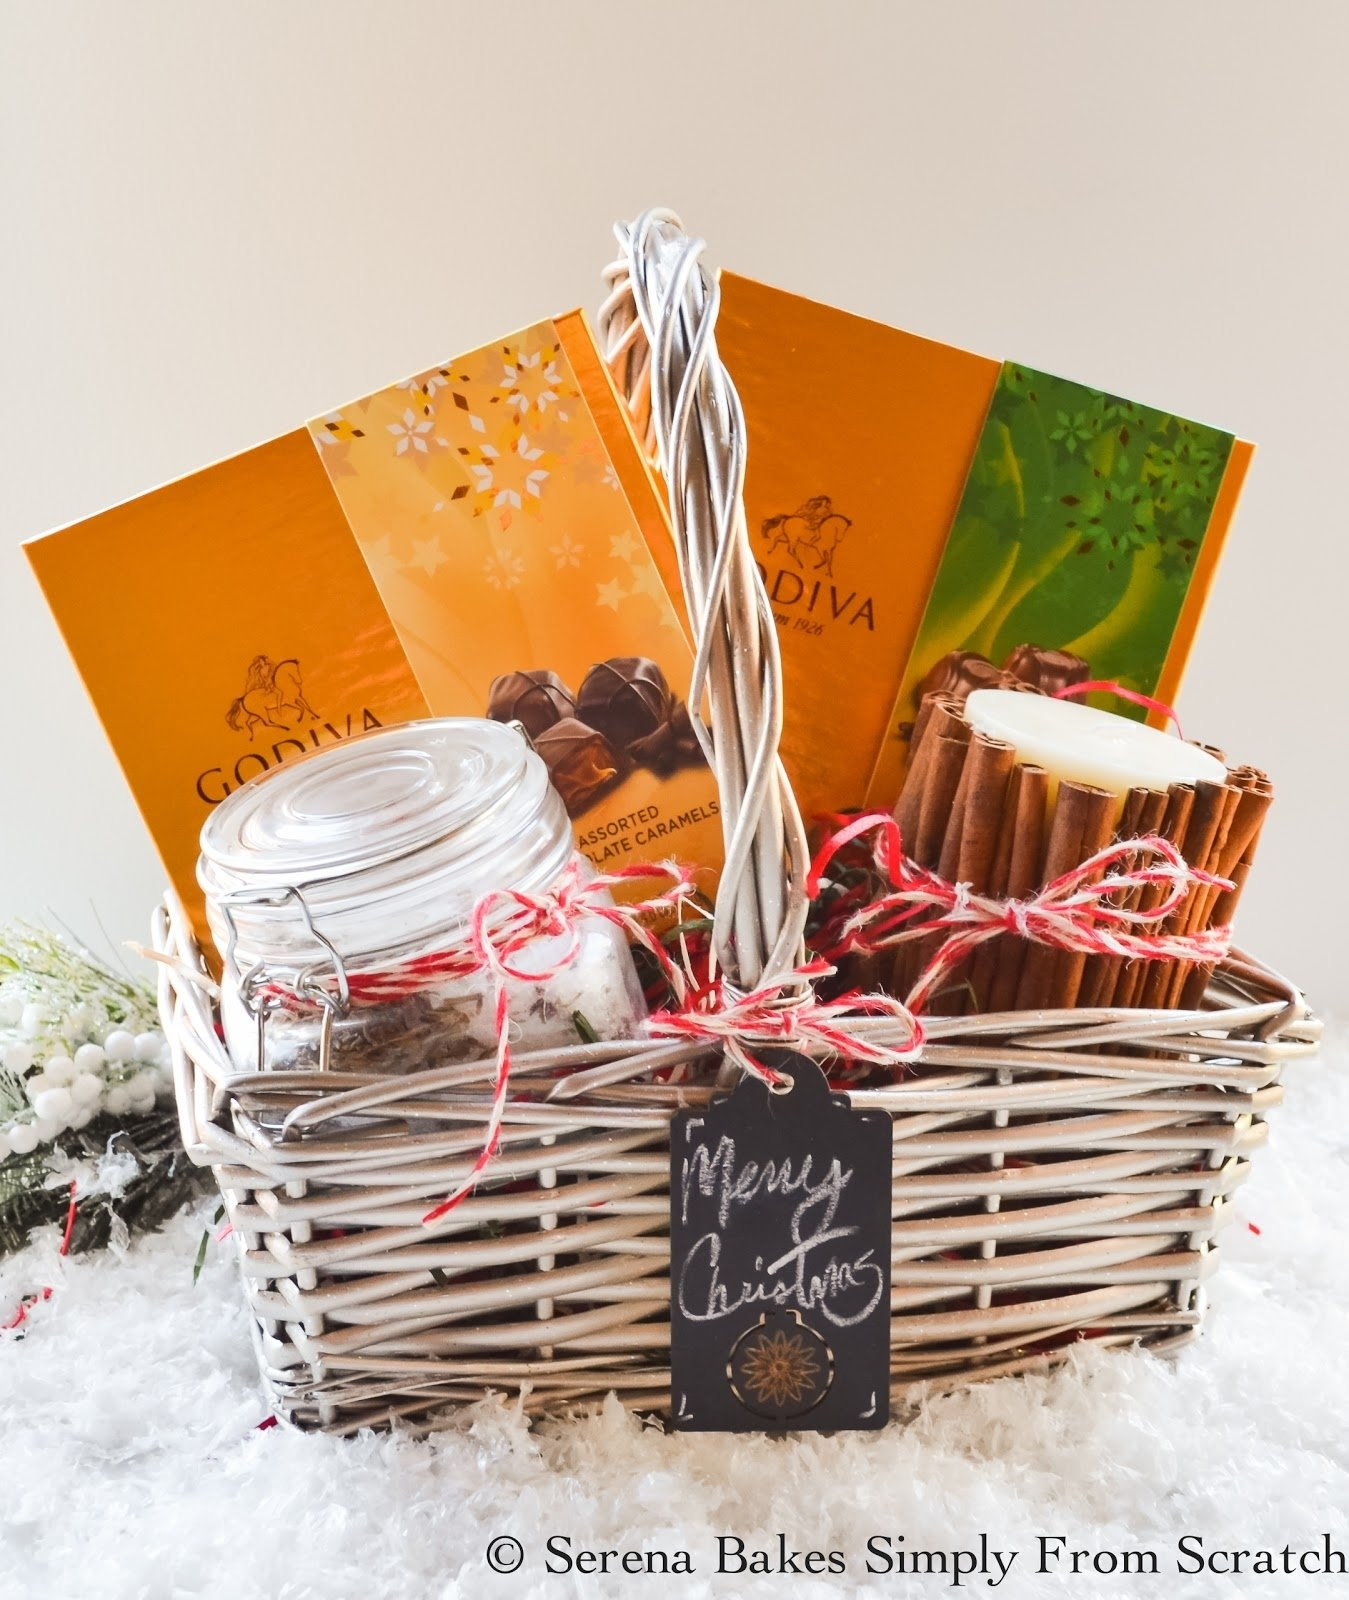 10 Attractive Homemade Christmas Gift Baskets Ideas holiday gift basket ideas serena bakes simply from scratch 1 2020